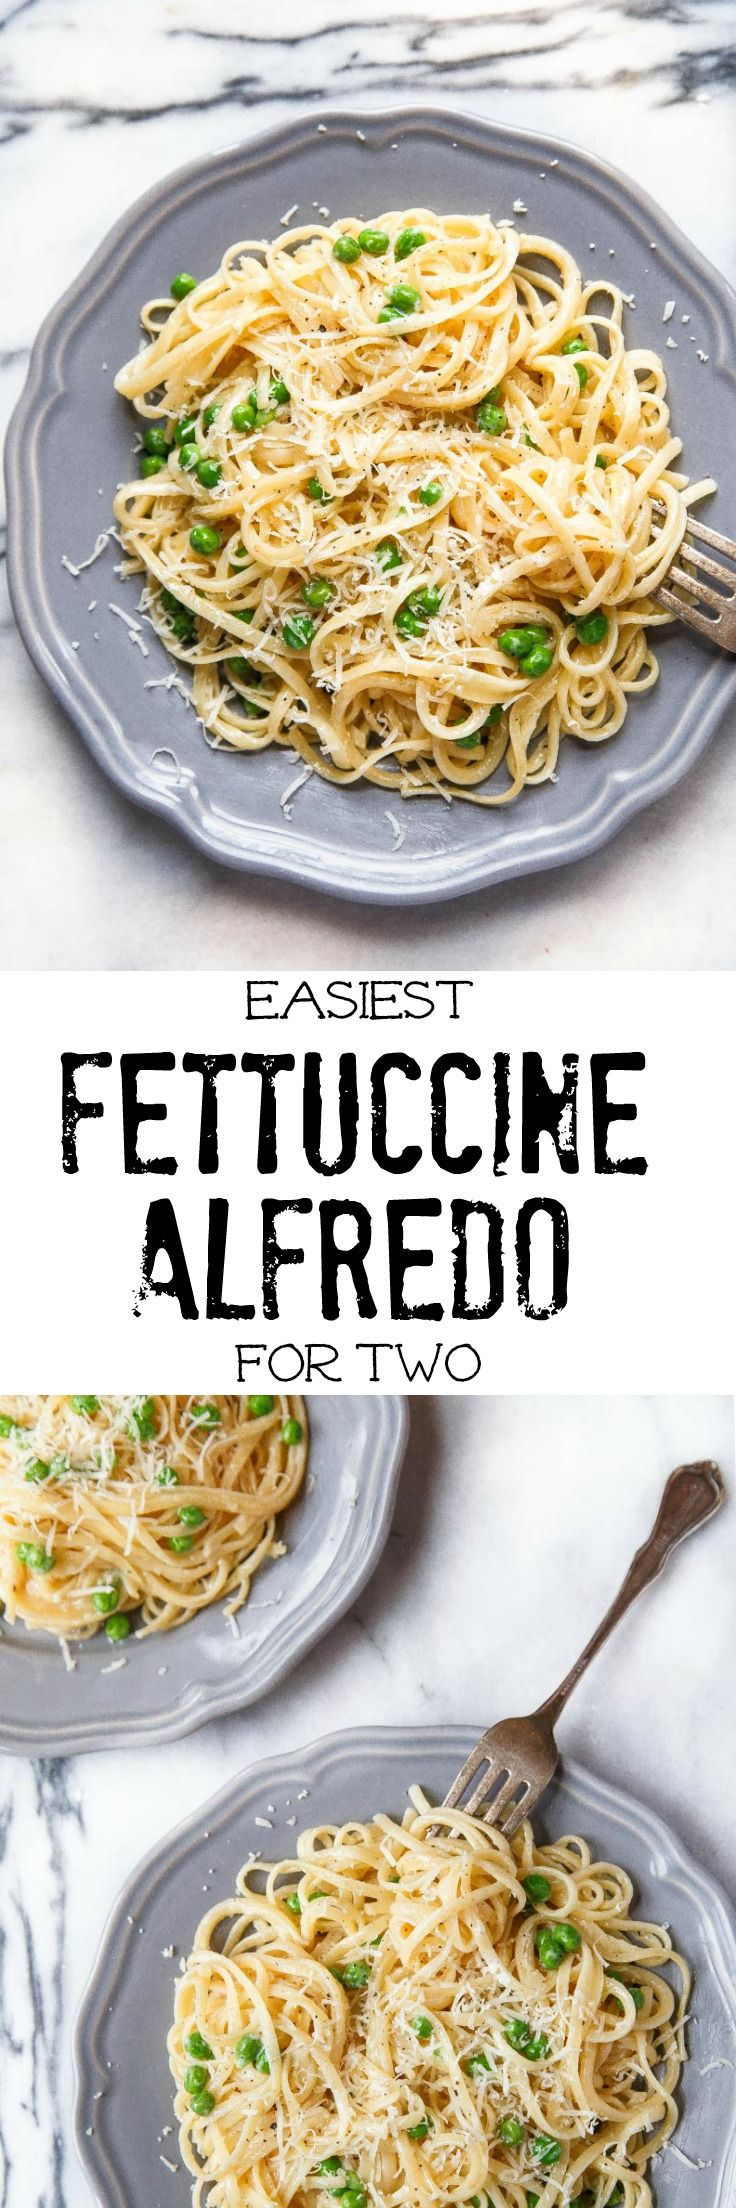 204 best cooking for two. images on Pinterest | Cooking for two ...